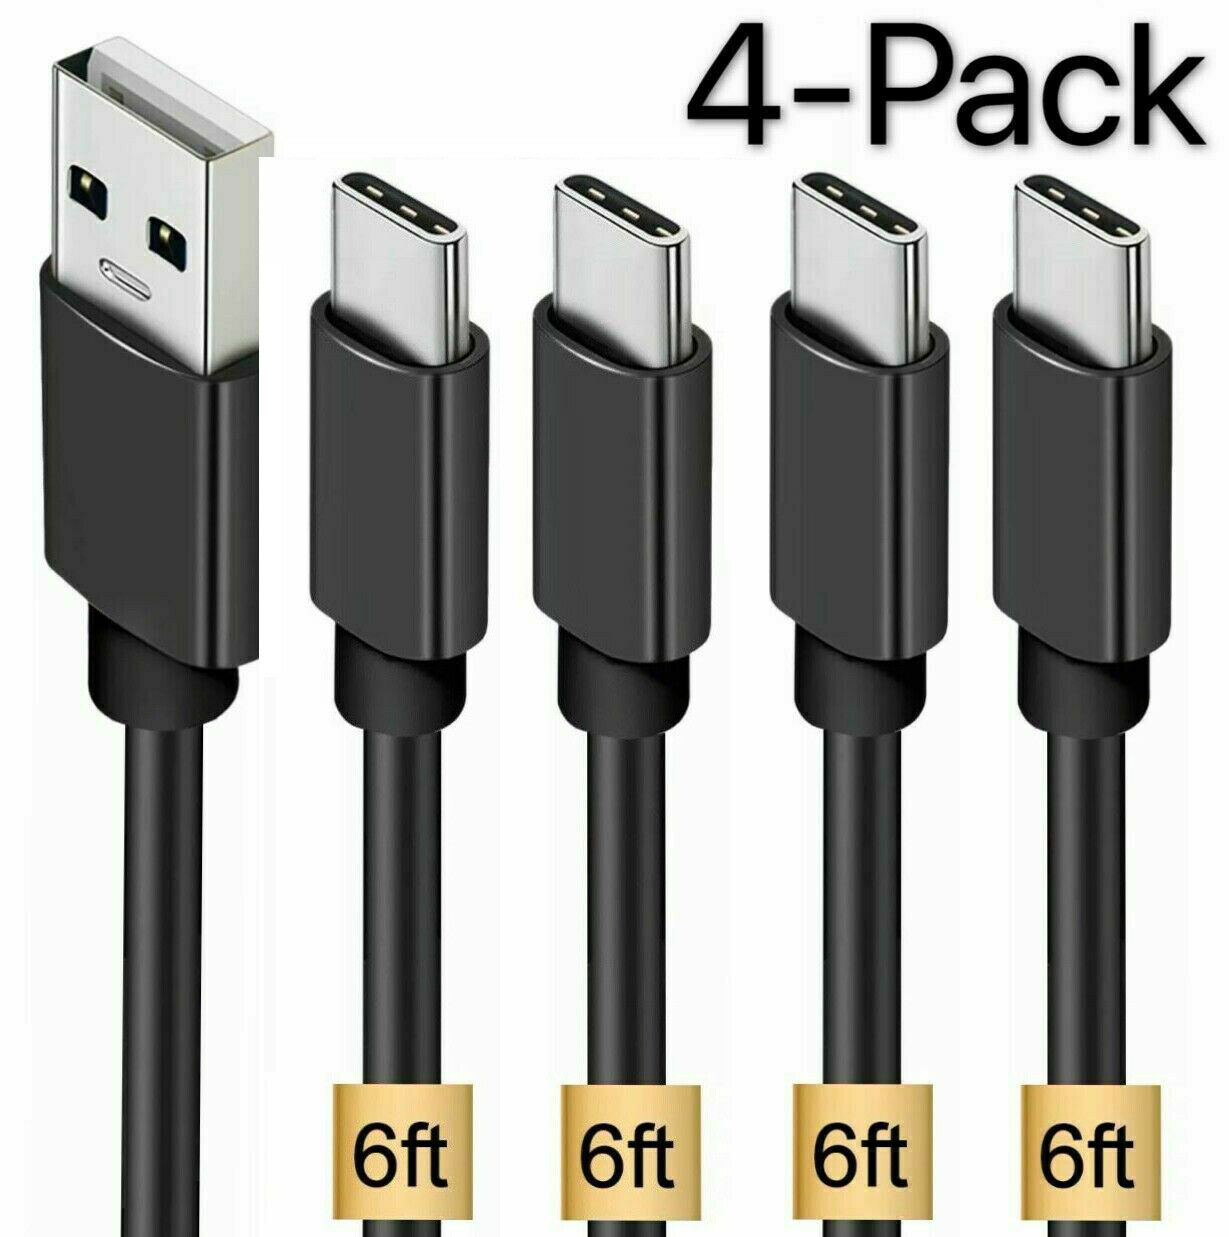 4 Pack OEM  Samsung USB C Cable Type C Fast Charger For Galaxy S8 S9 S10 Plus Cables & Adapters